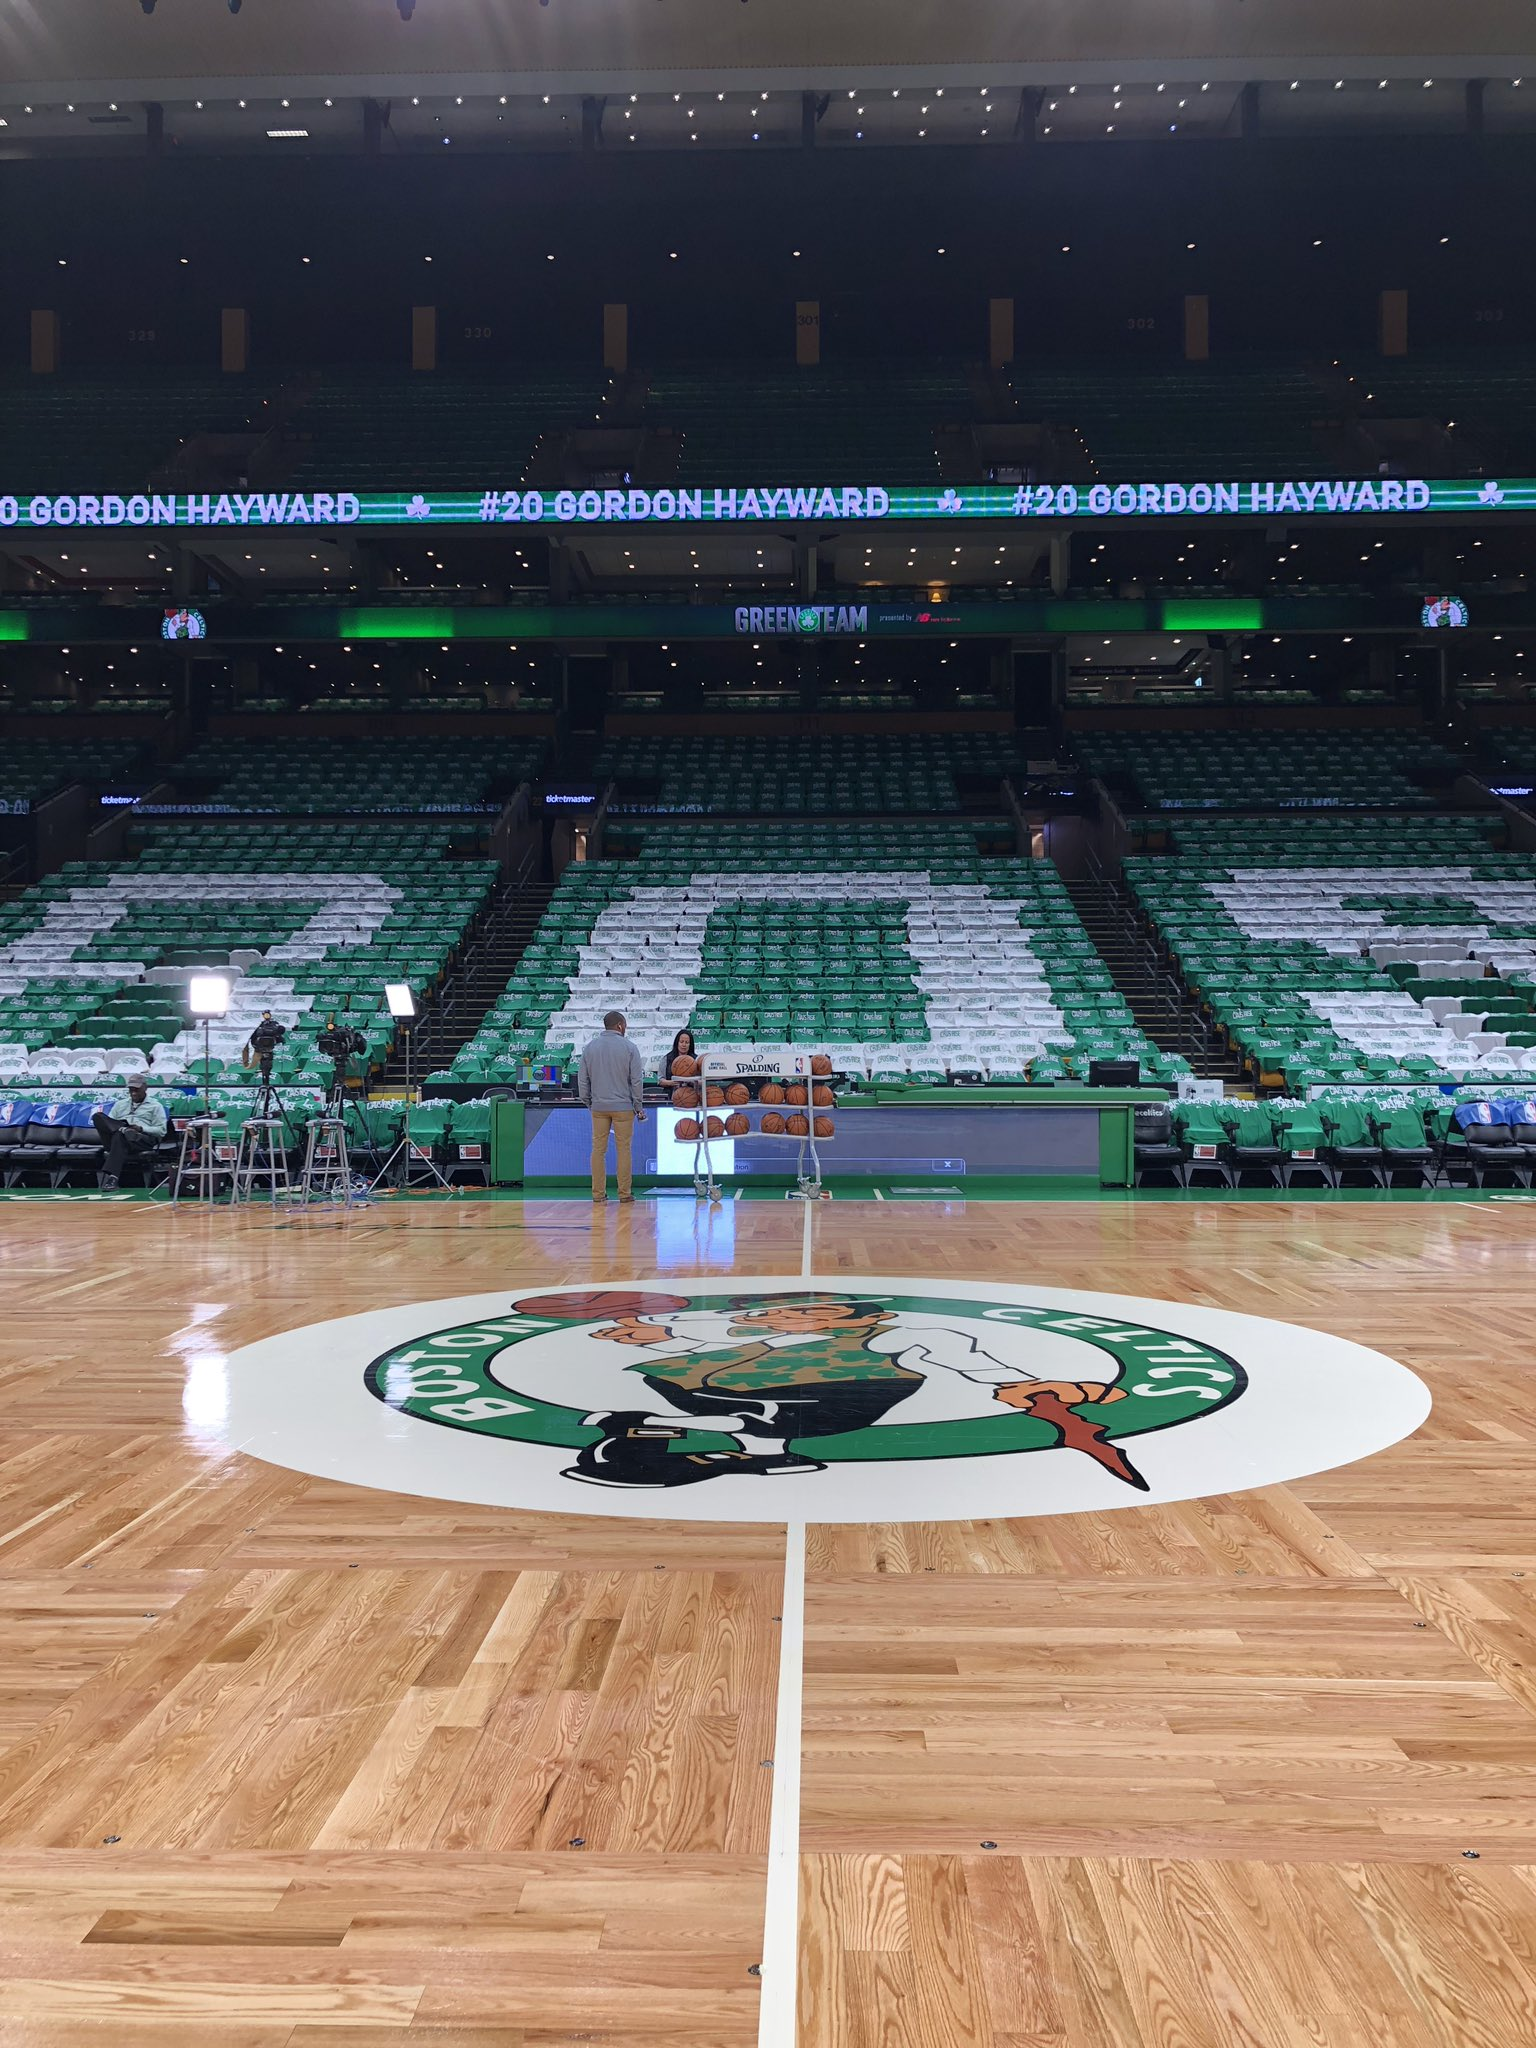 Back in Boston for #KiaTipOff18!  #CUsRise x #HereTheyCome.  ��: 8pm/et @NBAonTNT. https://t.co/SG2XBkiks6